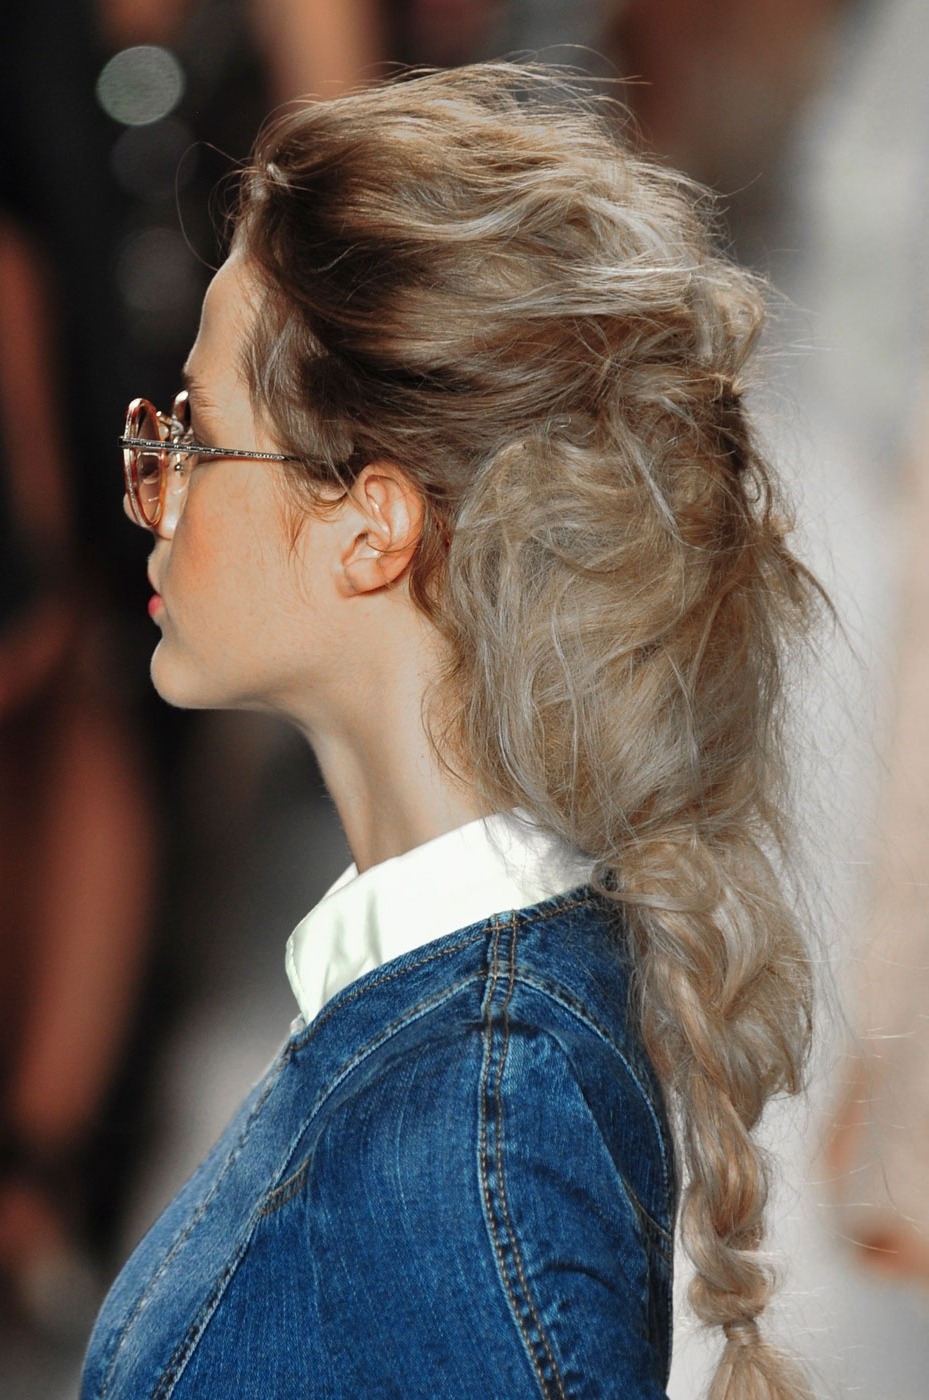 How To Get The Braided Hairstyle From Rachel Zoe (View 11 of 20)